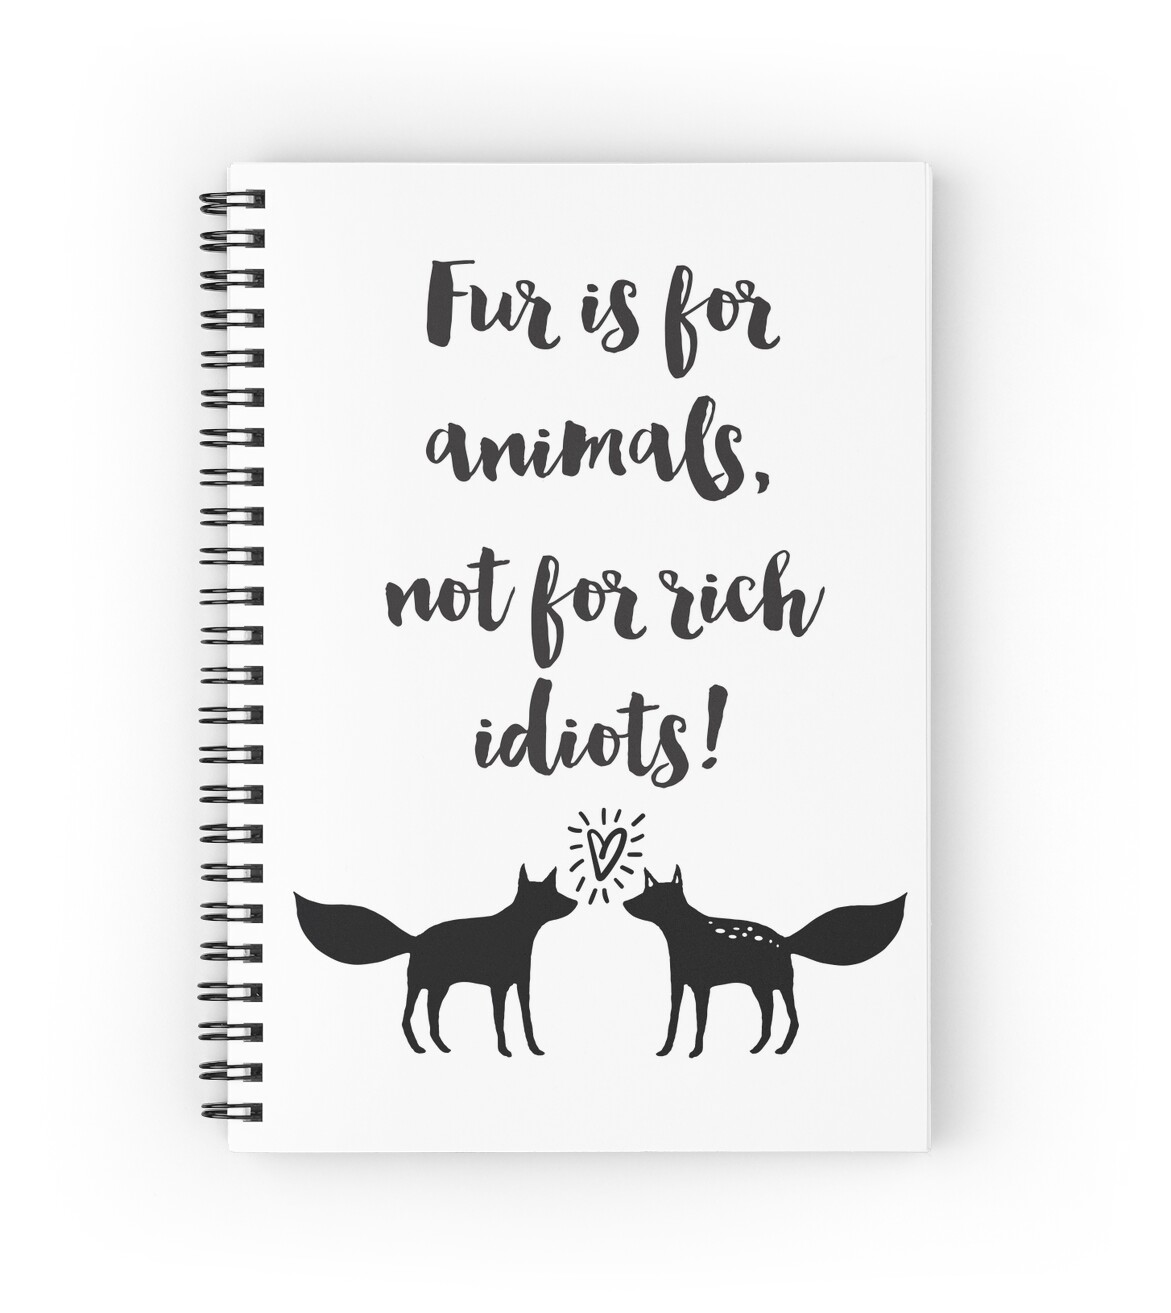 """Quotes Notebook Fur Is For Animals Not For Rich Idiots Quotes"""" Spiral Notebooks."""